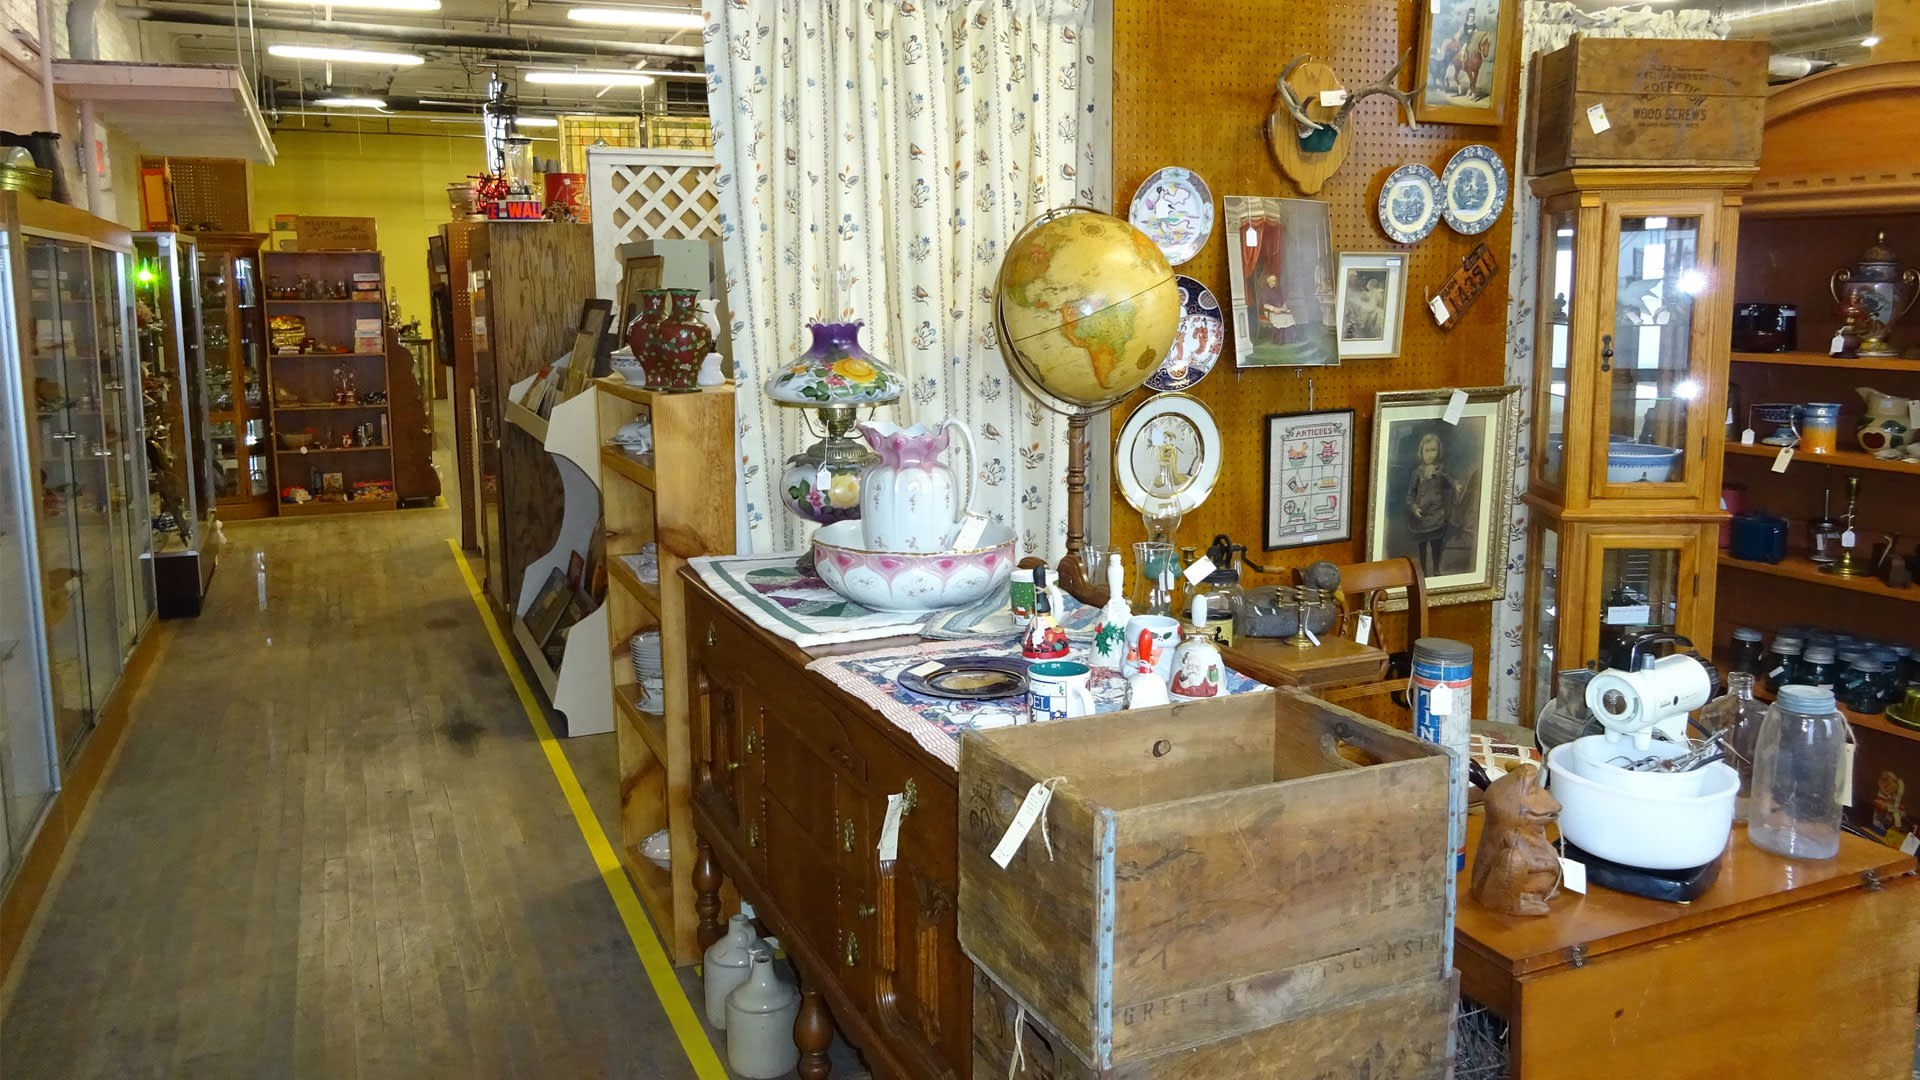 Globes, plates, and crates